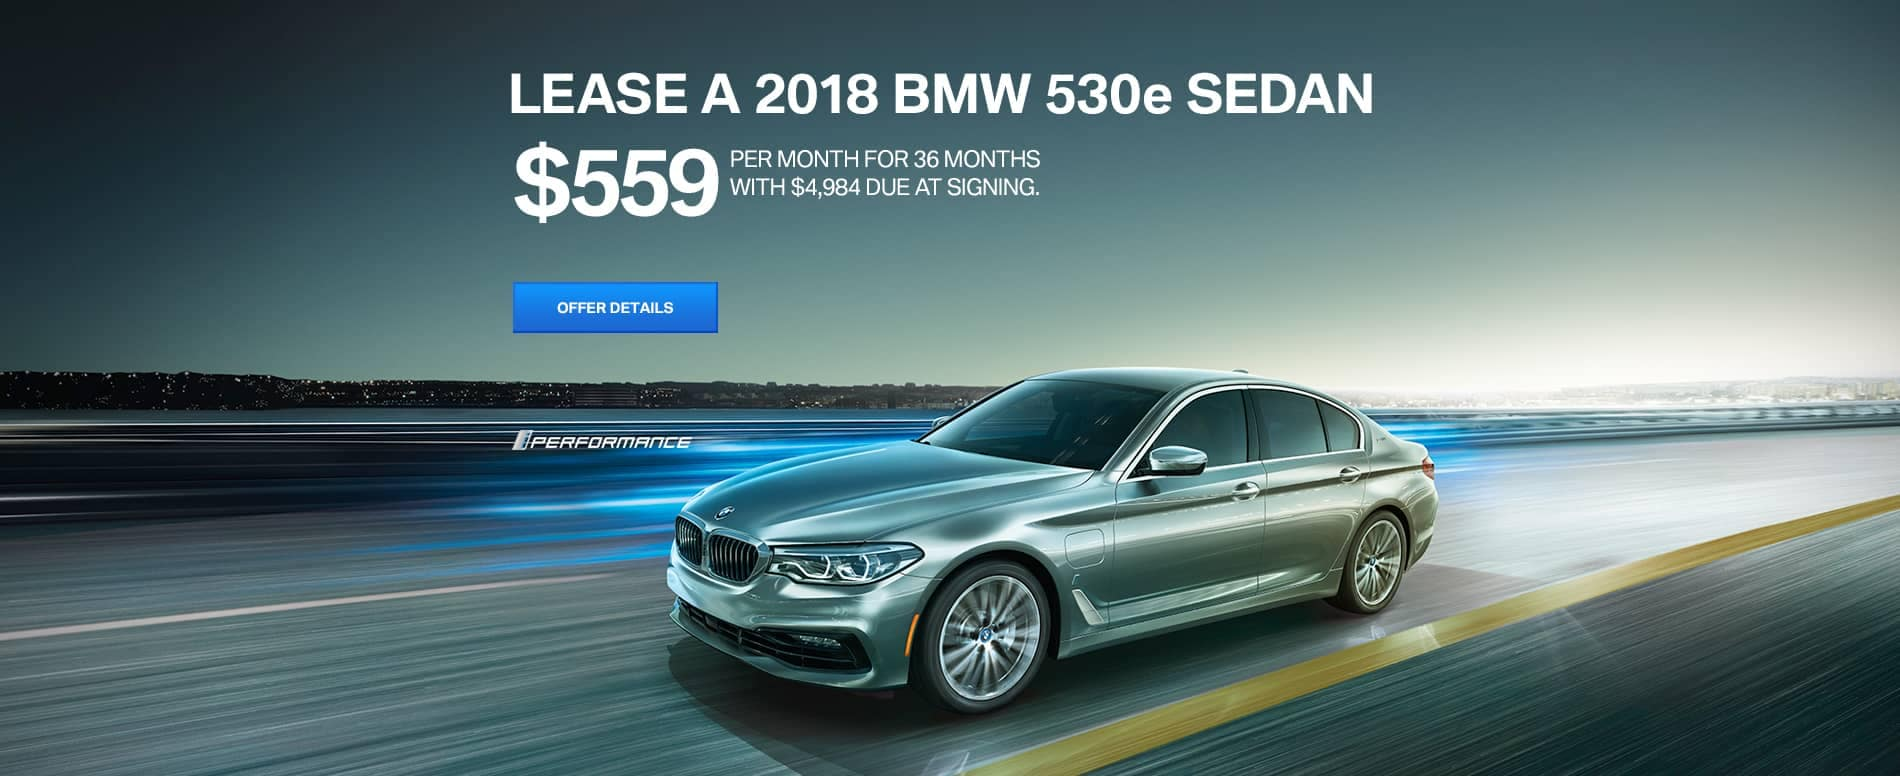 2018_530e_iPerformance_Sedan_REGIONAL_$559_Lease